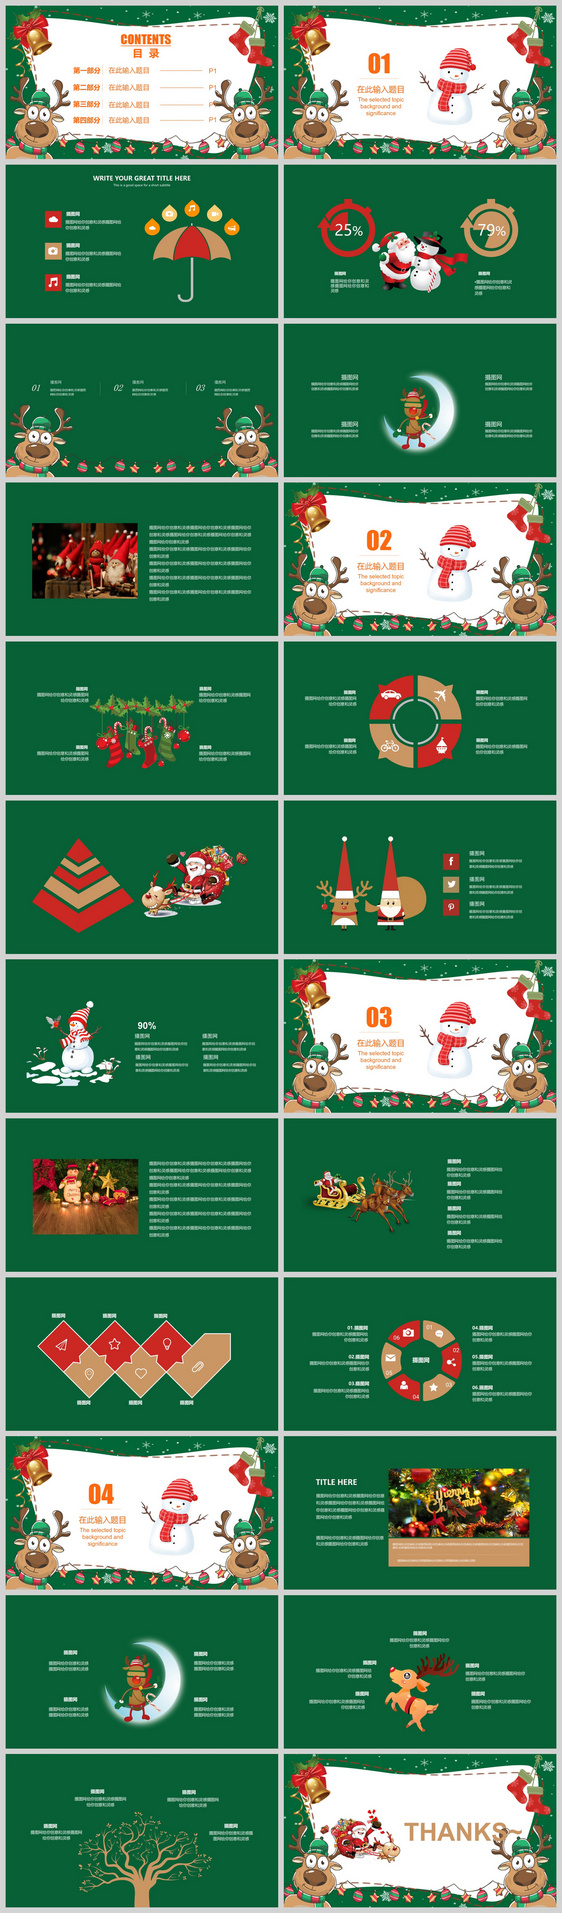 Lovely Green Cartoon Christmas Ppt Template Powerpoint 400793179 M